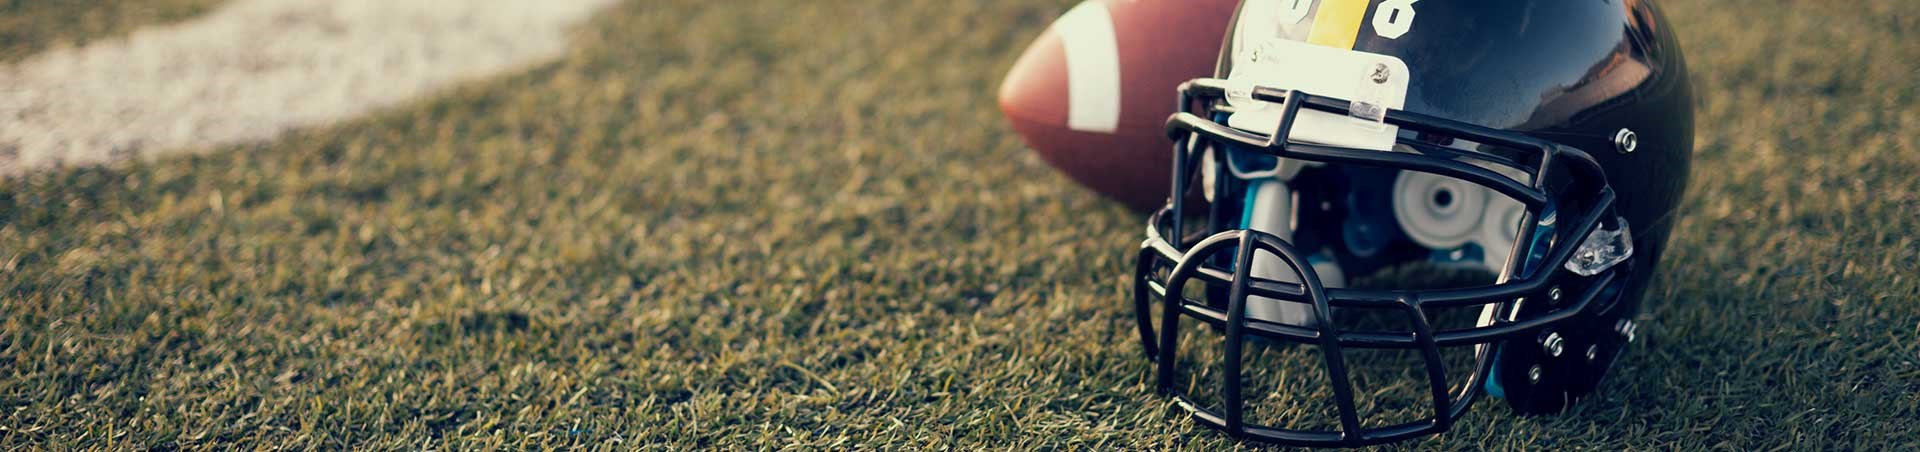 Watch live NFL games with National Express coaches